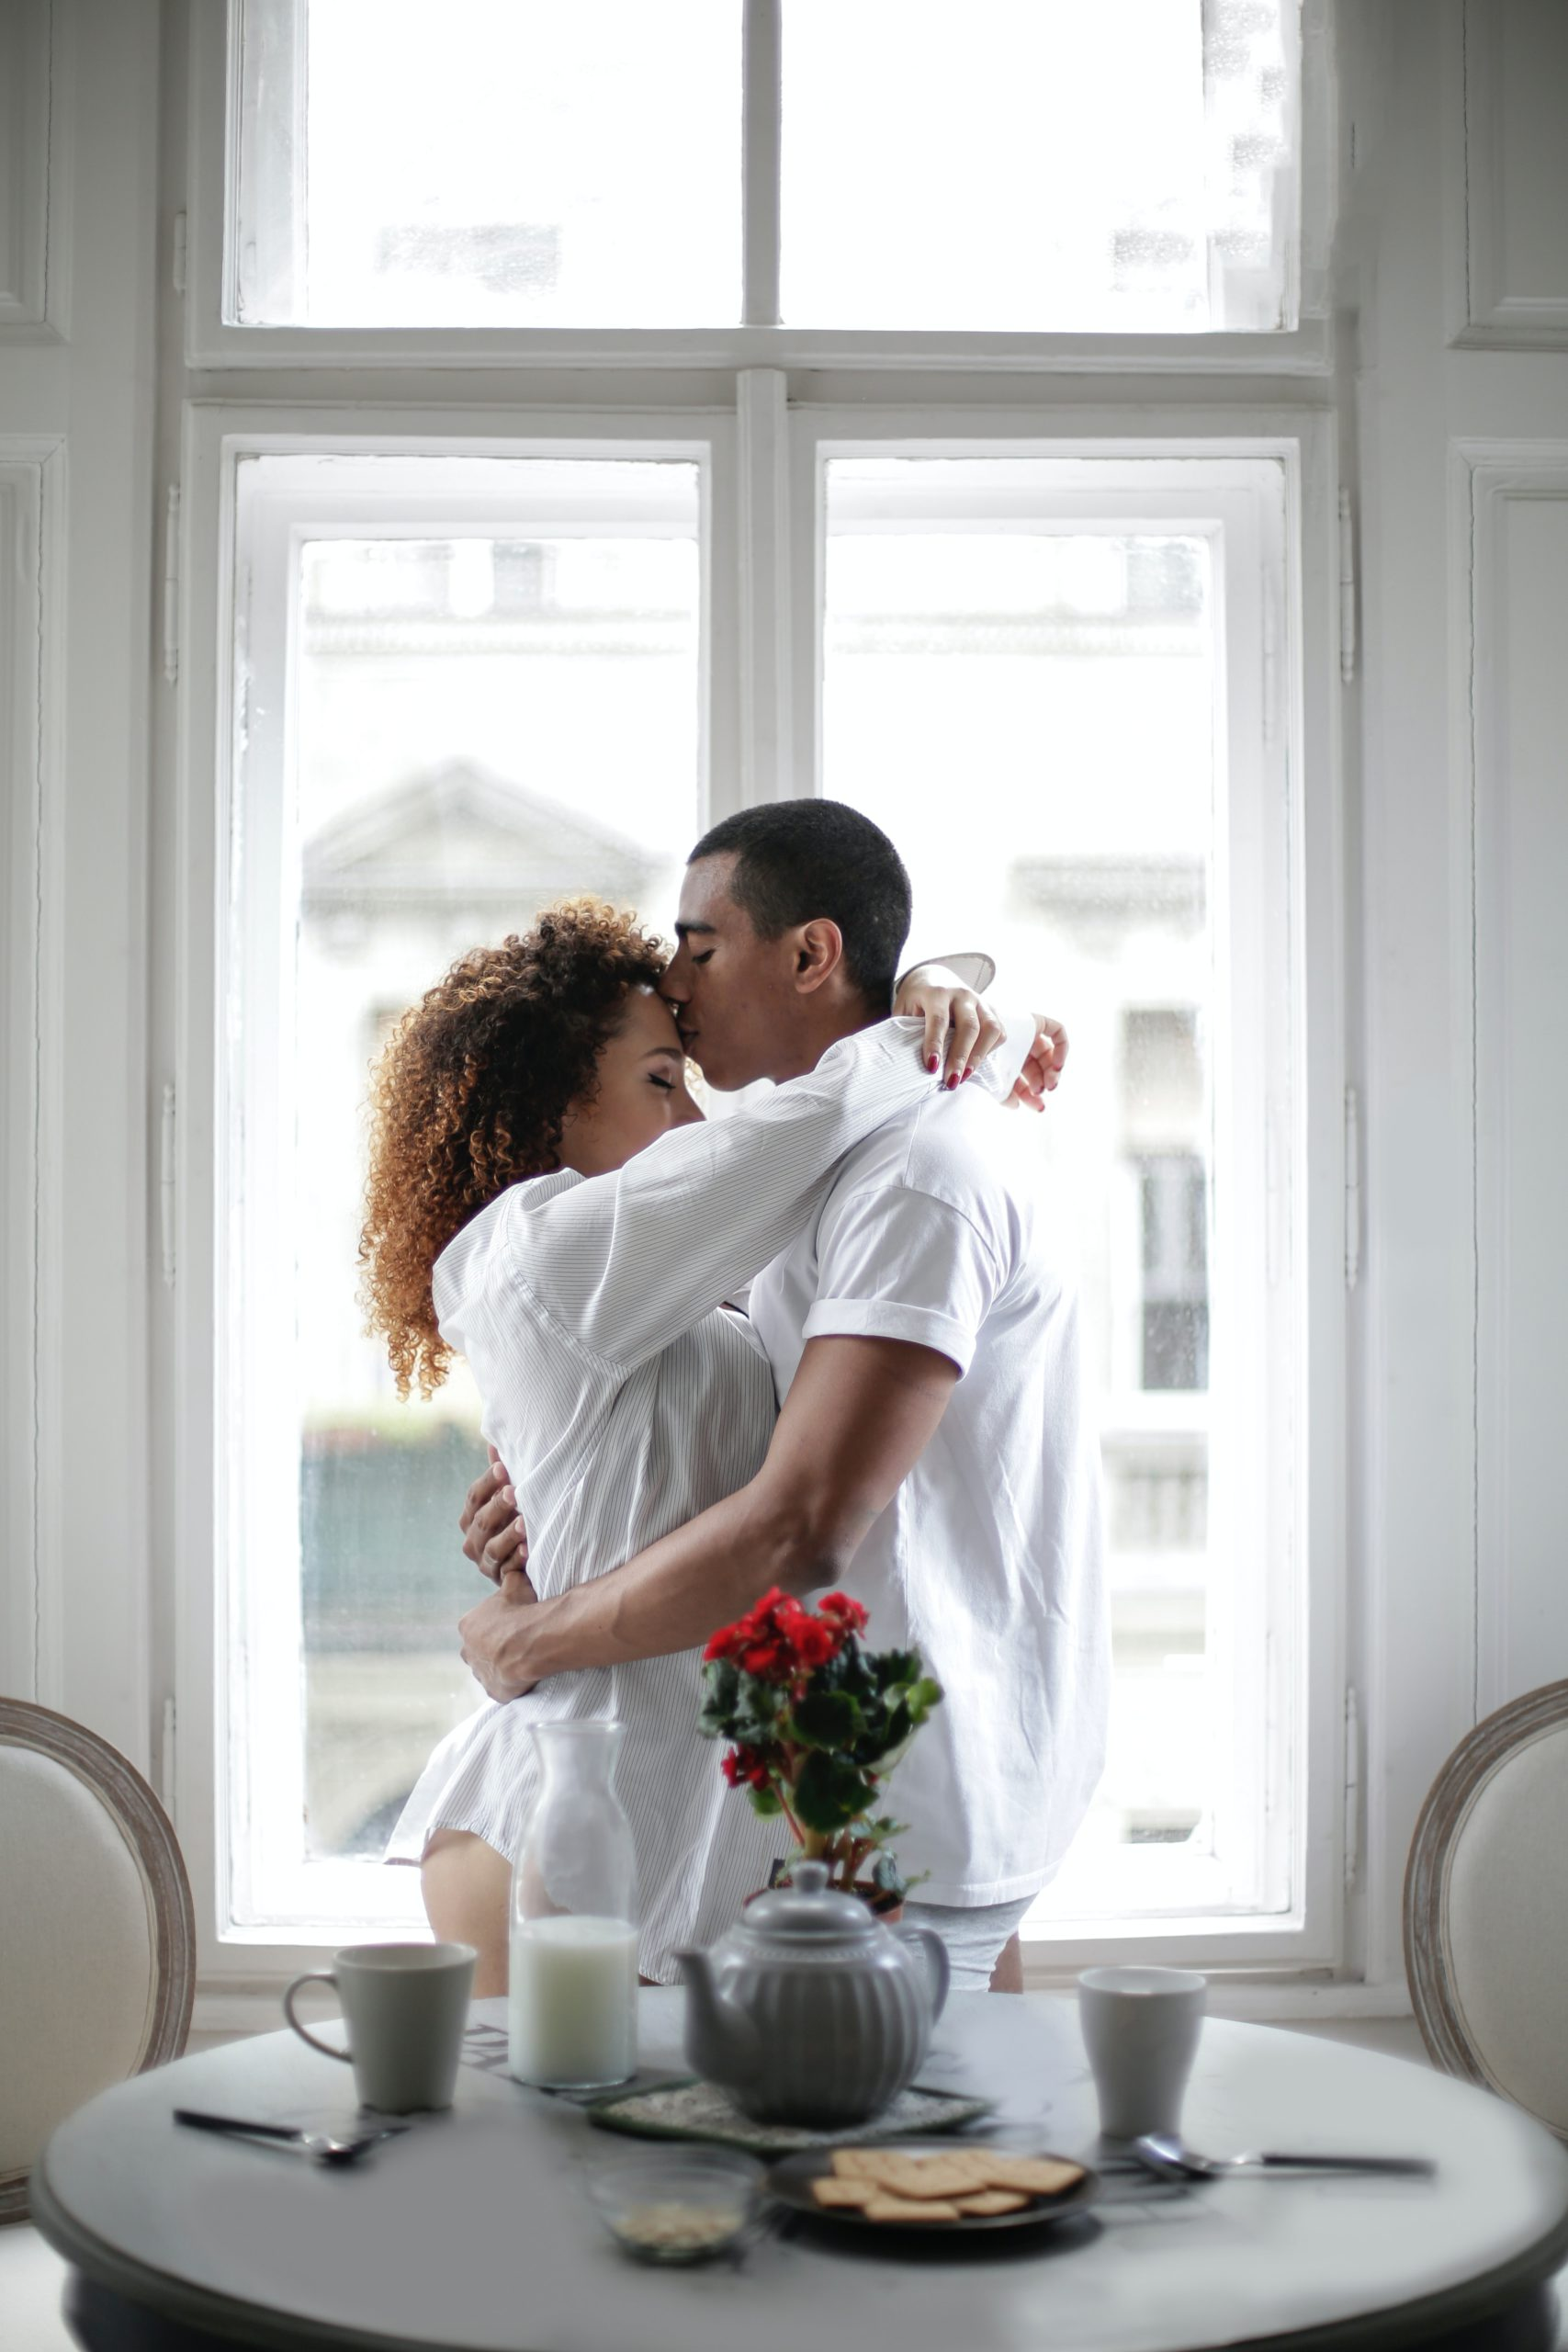 4 Noticeable Signs a Casual Relationship is Getting Serious